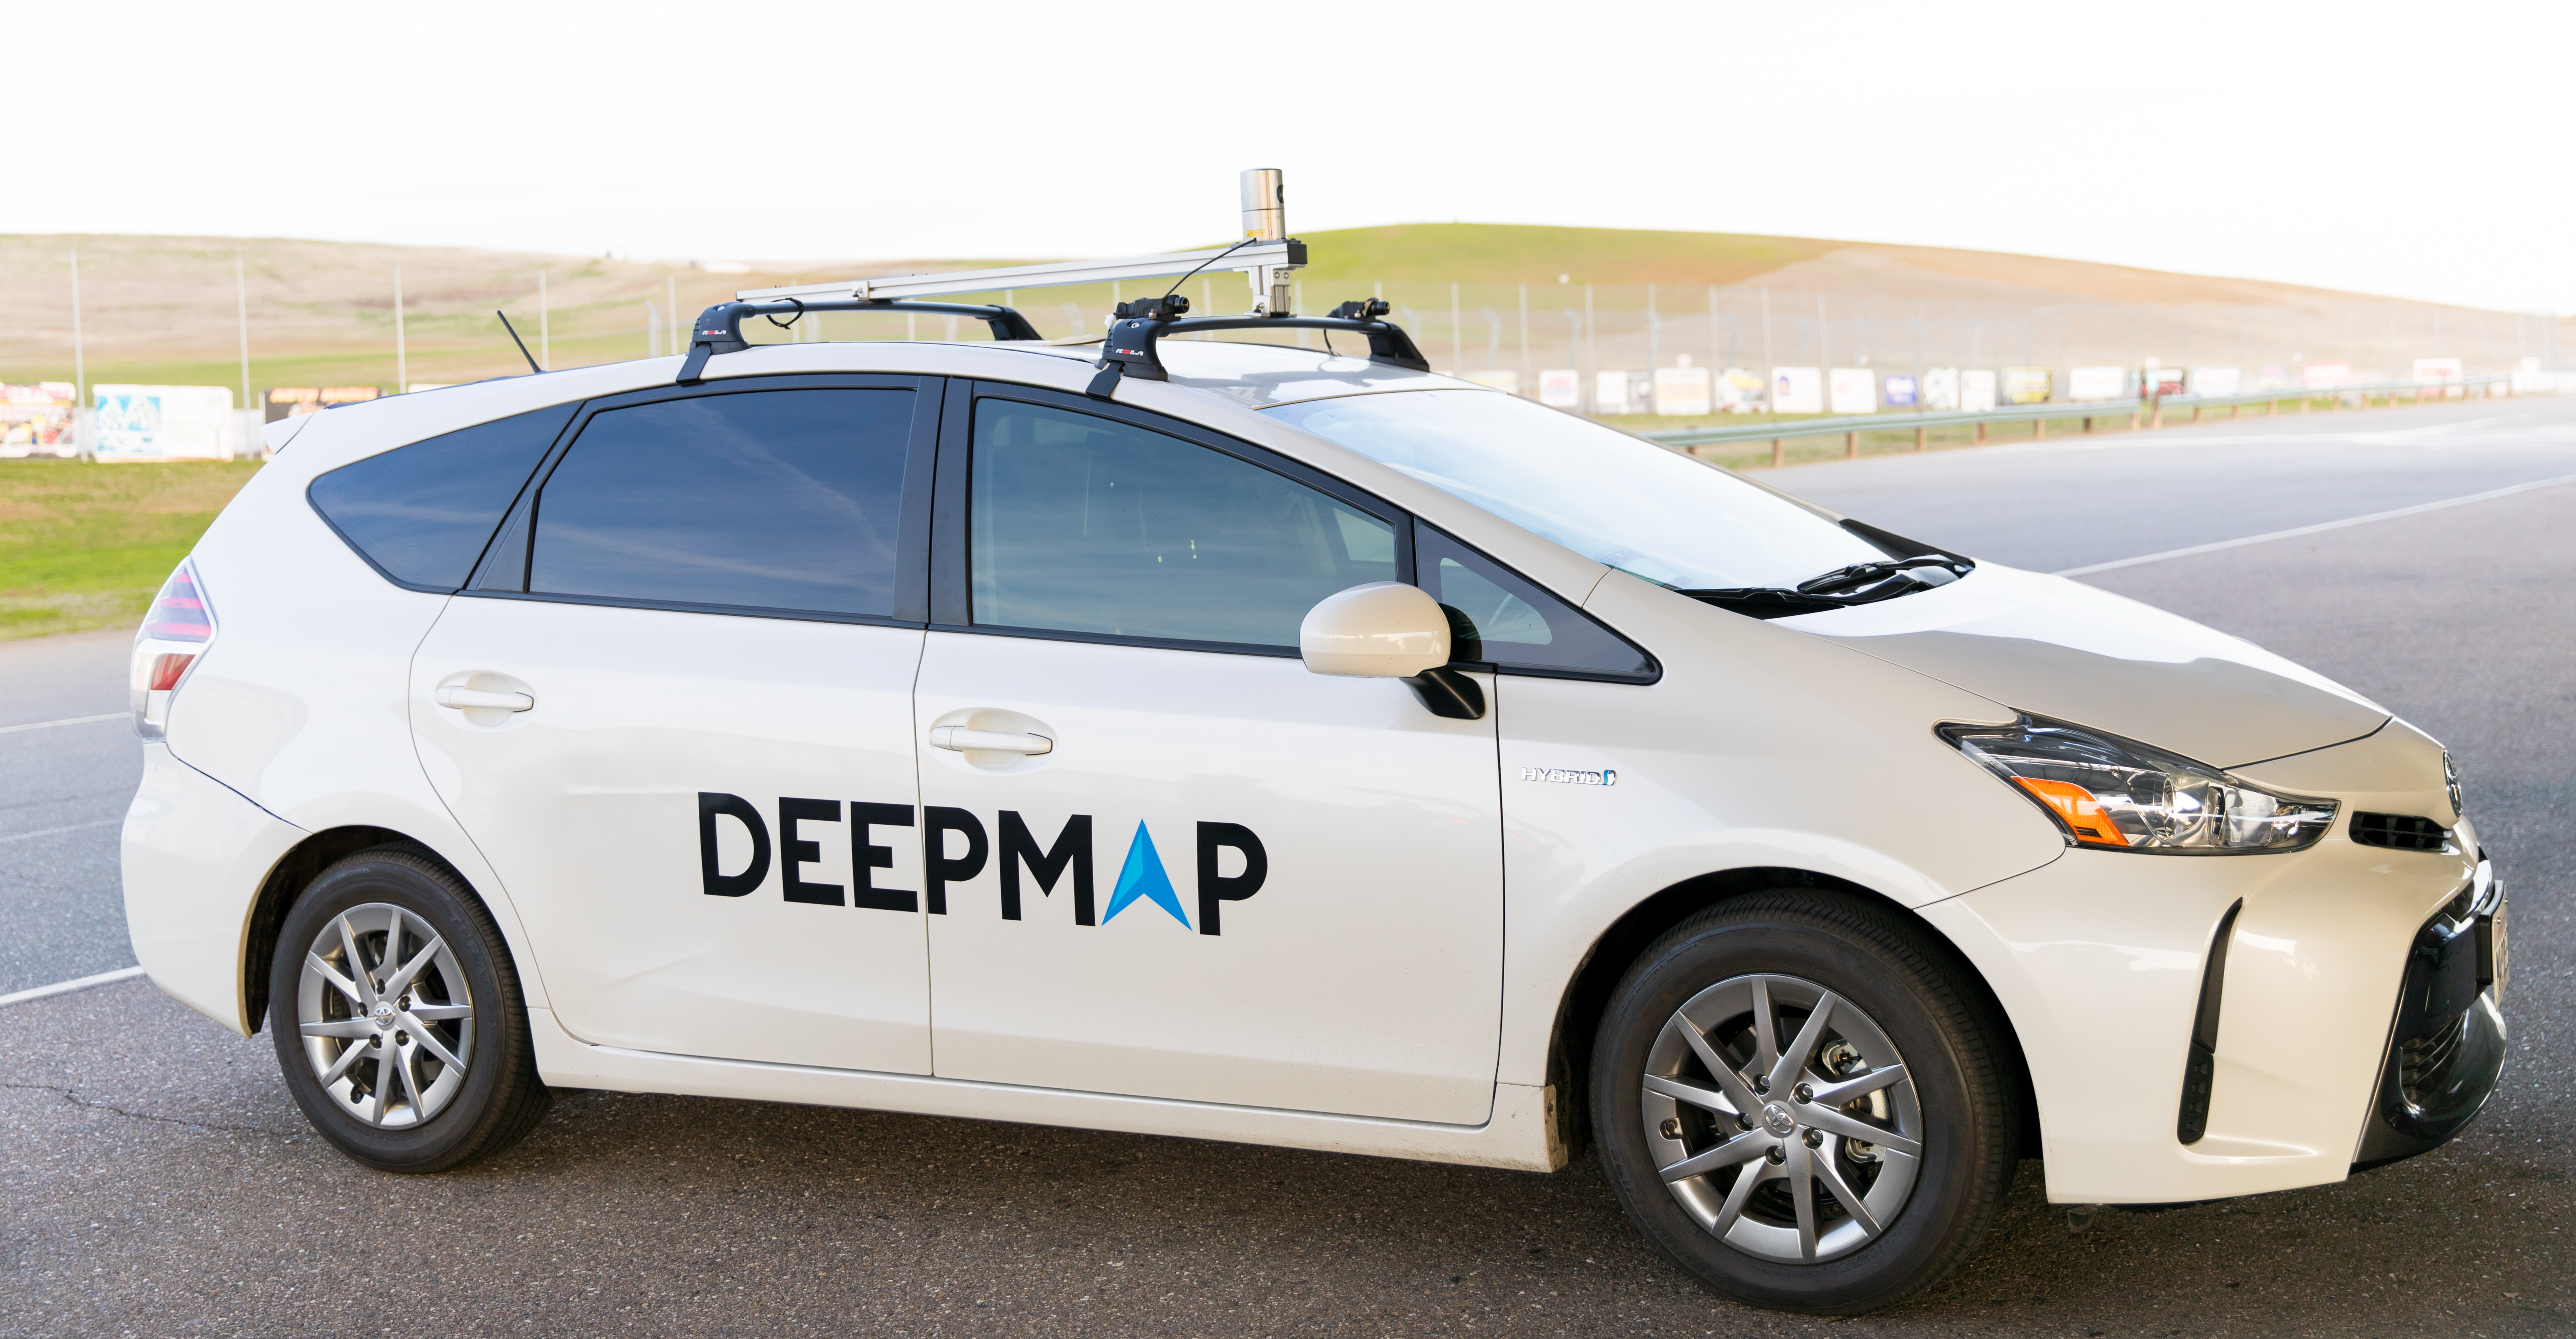 DeepMap vehicle